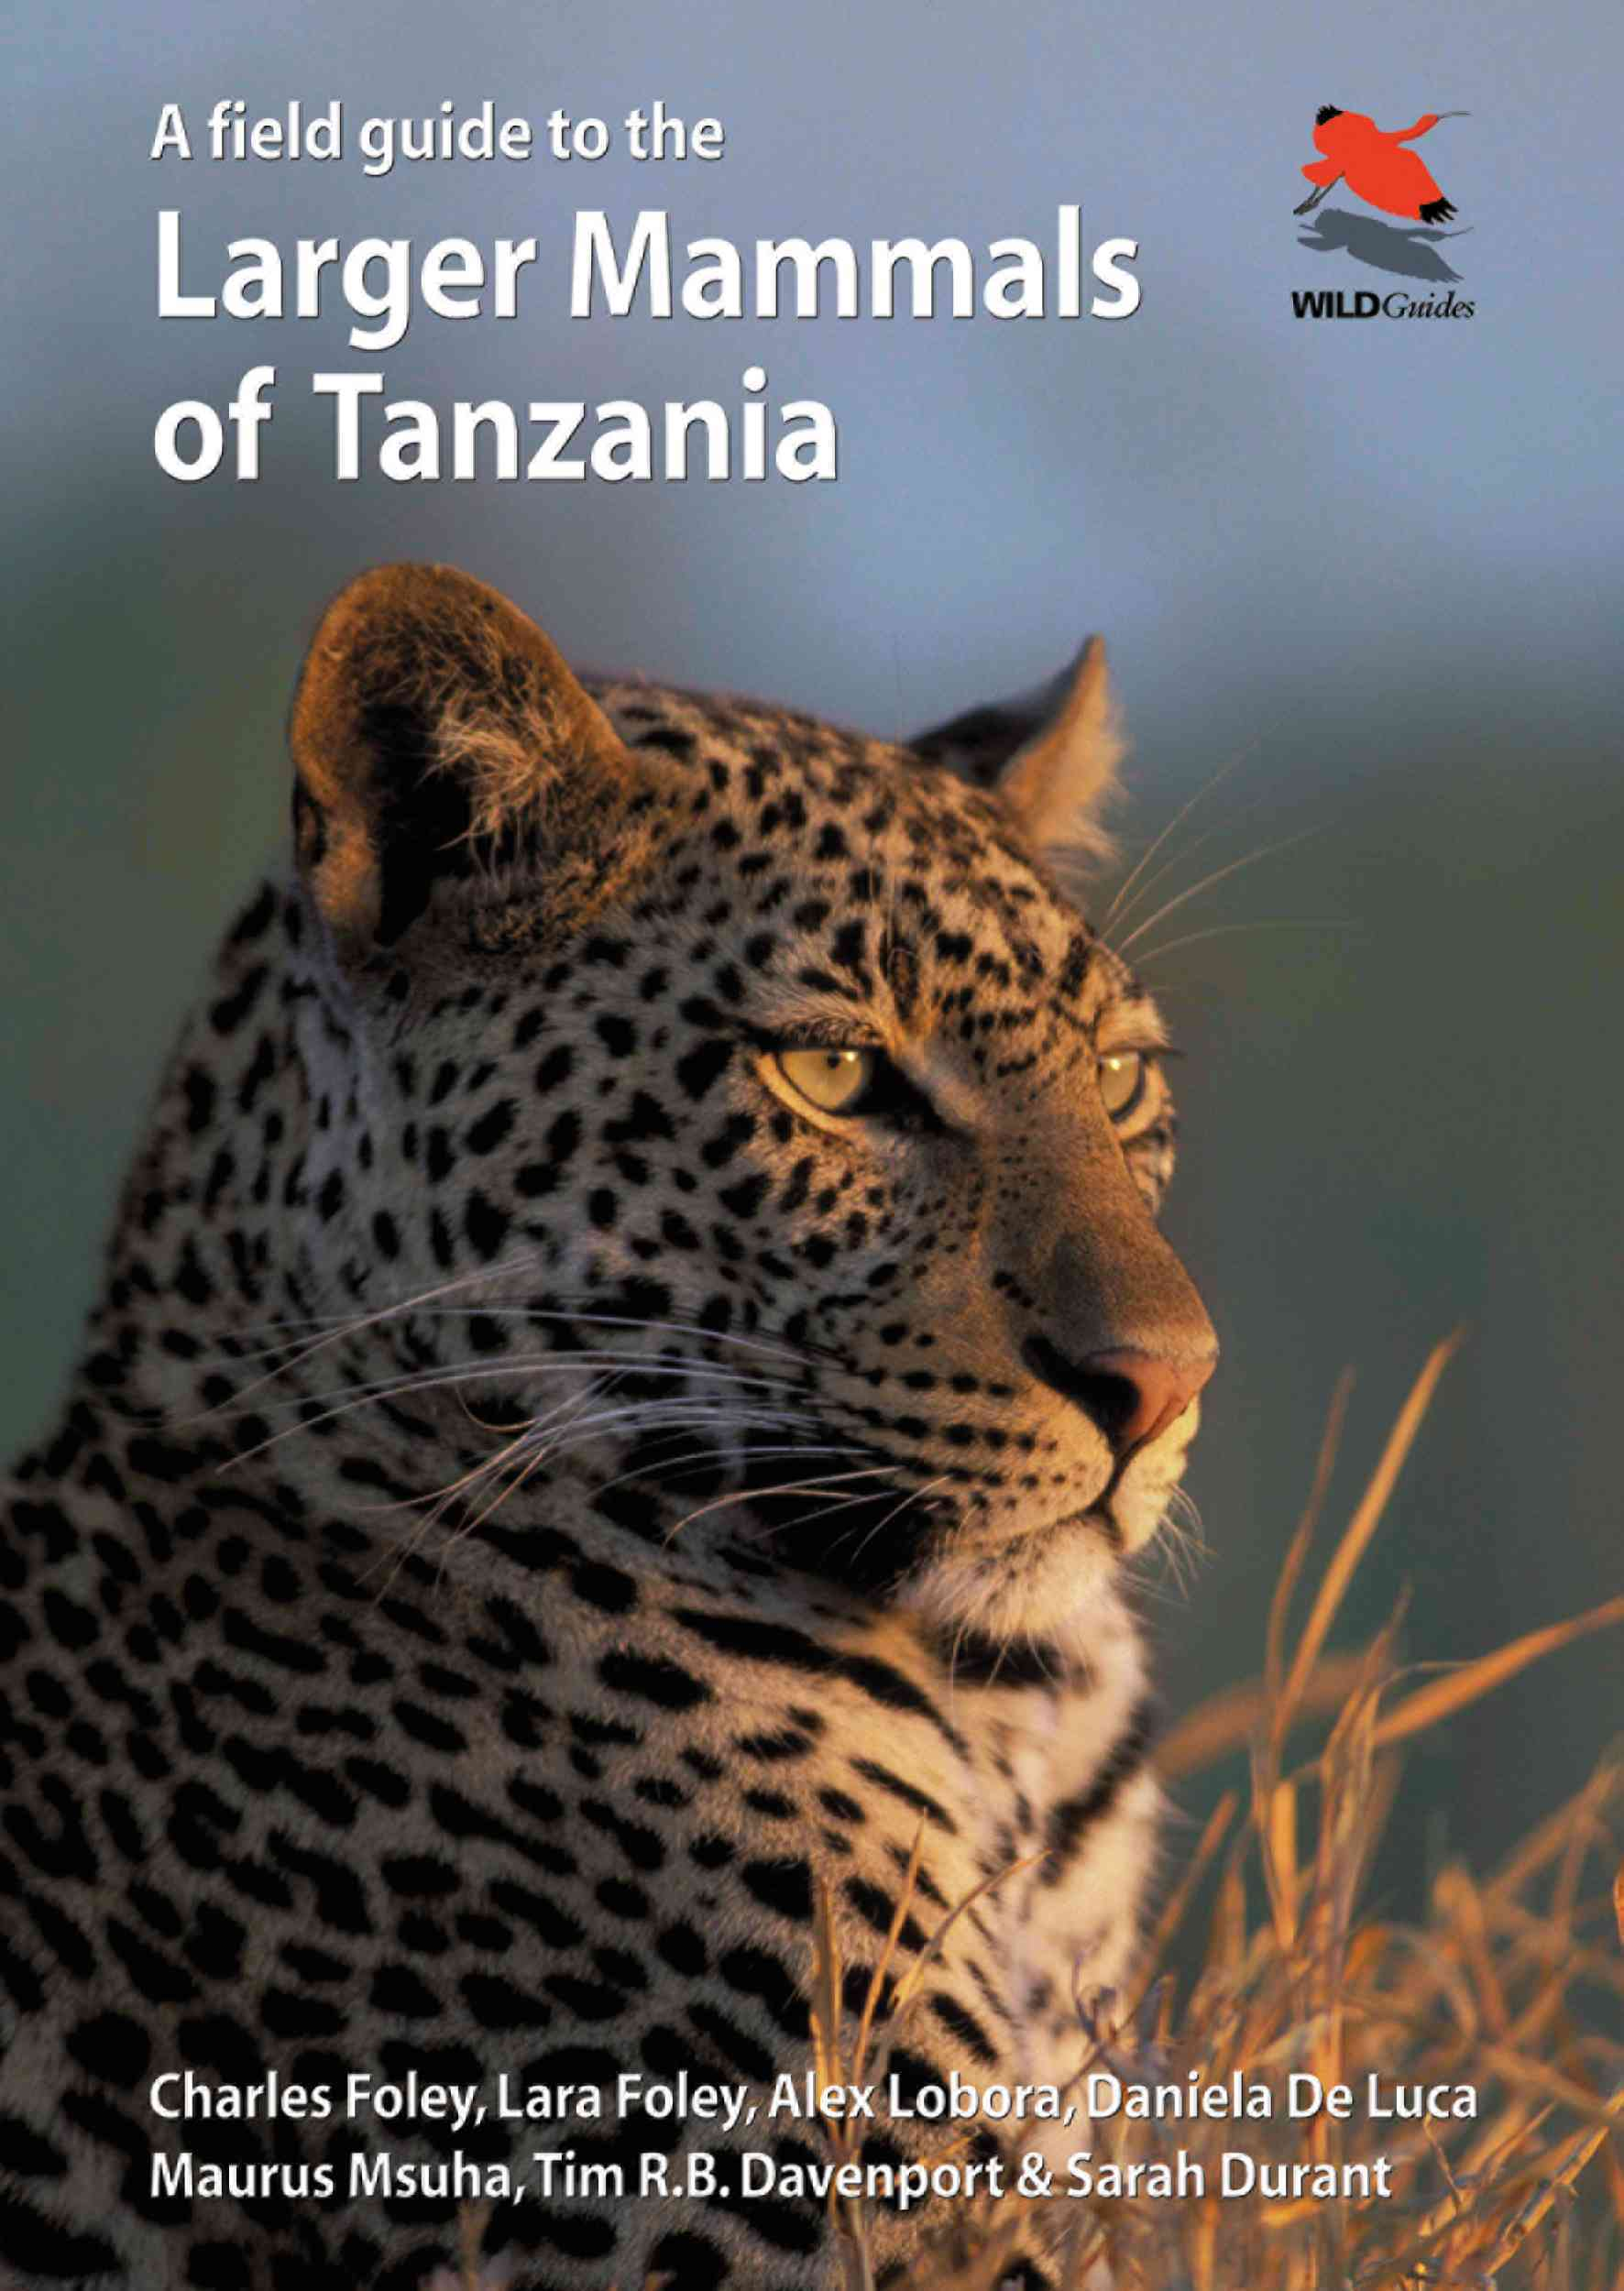 A Field Guide to the Larger Mammals of Tanzania By Foley, Charles/ Foley, Lara/ Lobora, Alex/ De Luca, Daniela/ Msuha, Maurus